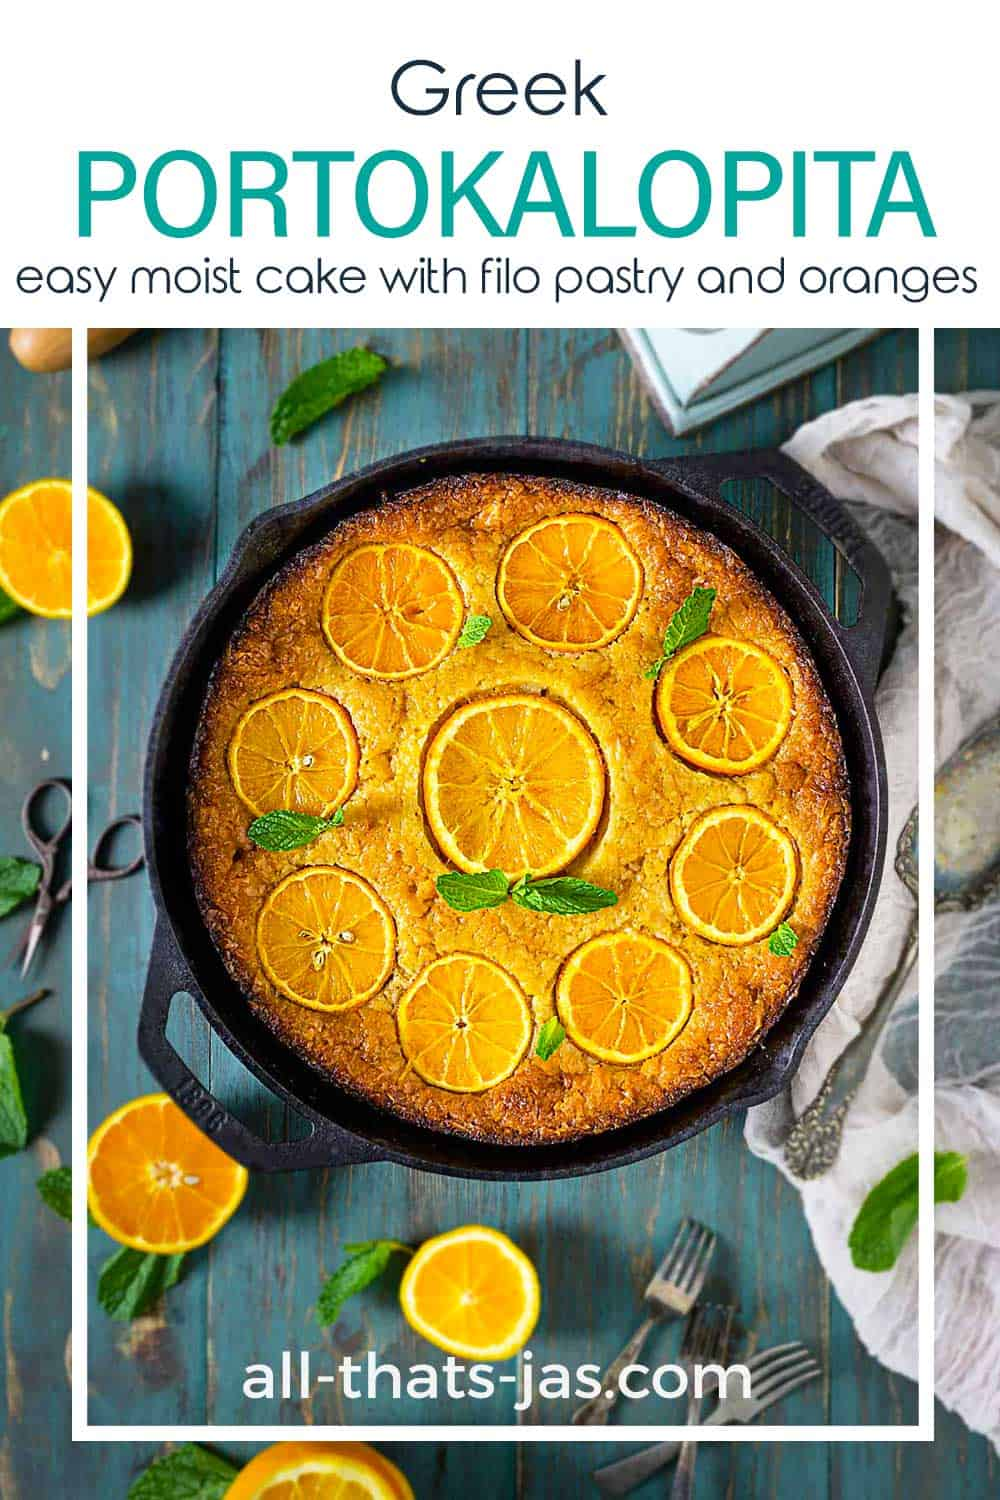 An overhead shot of homemade skillet cake with oranges and text overlay.